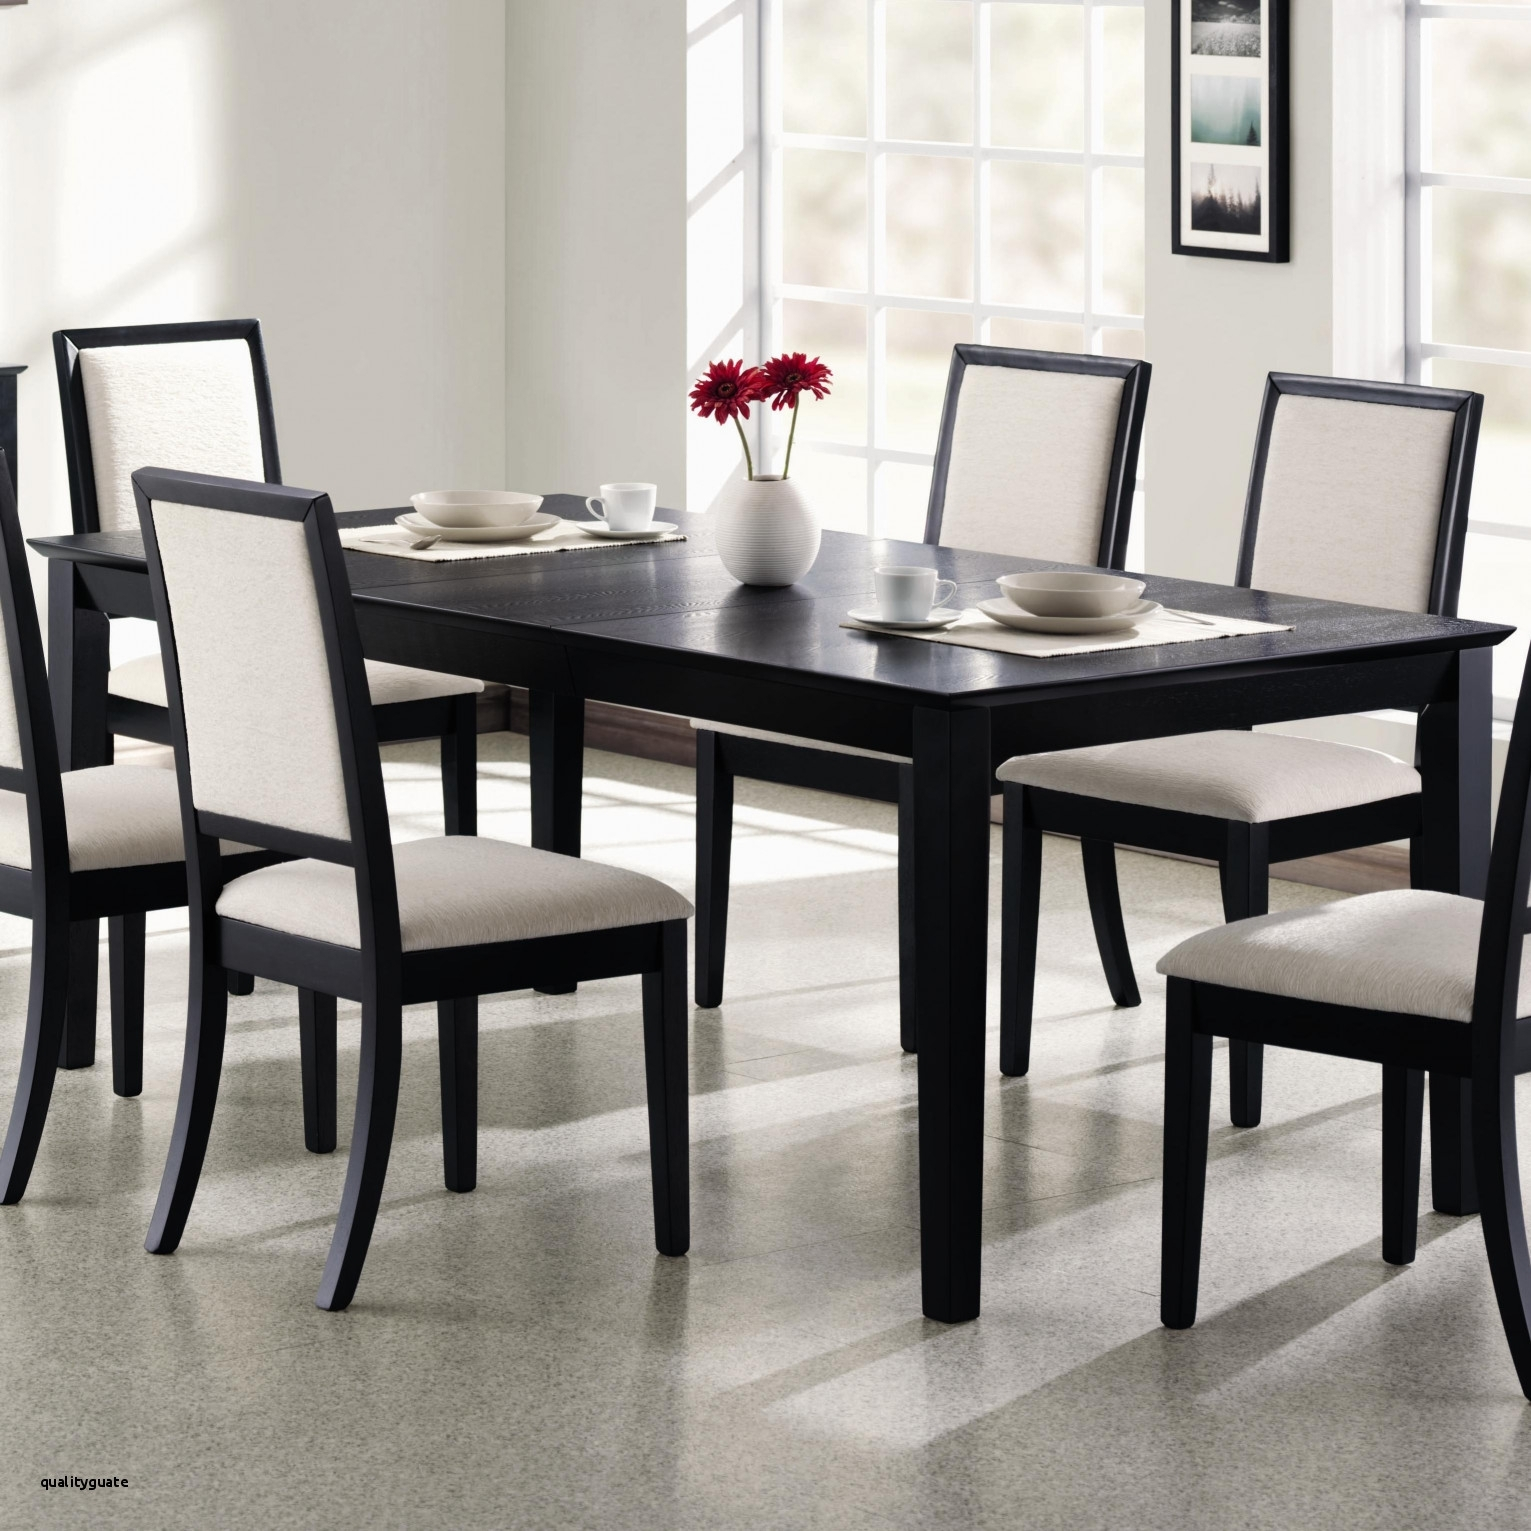 Imágenes De White Wooden Dining Room Table And Chairs Within Most Recent Combs 5 Piece 48 Inch Extension Dining Sets With Pearson White Chairs (Image 15 of 20)